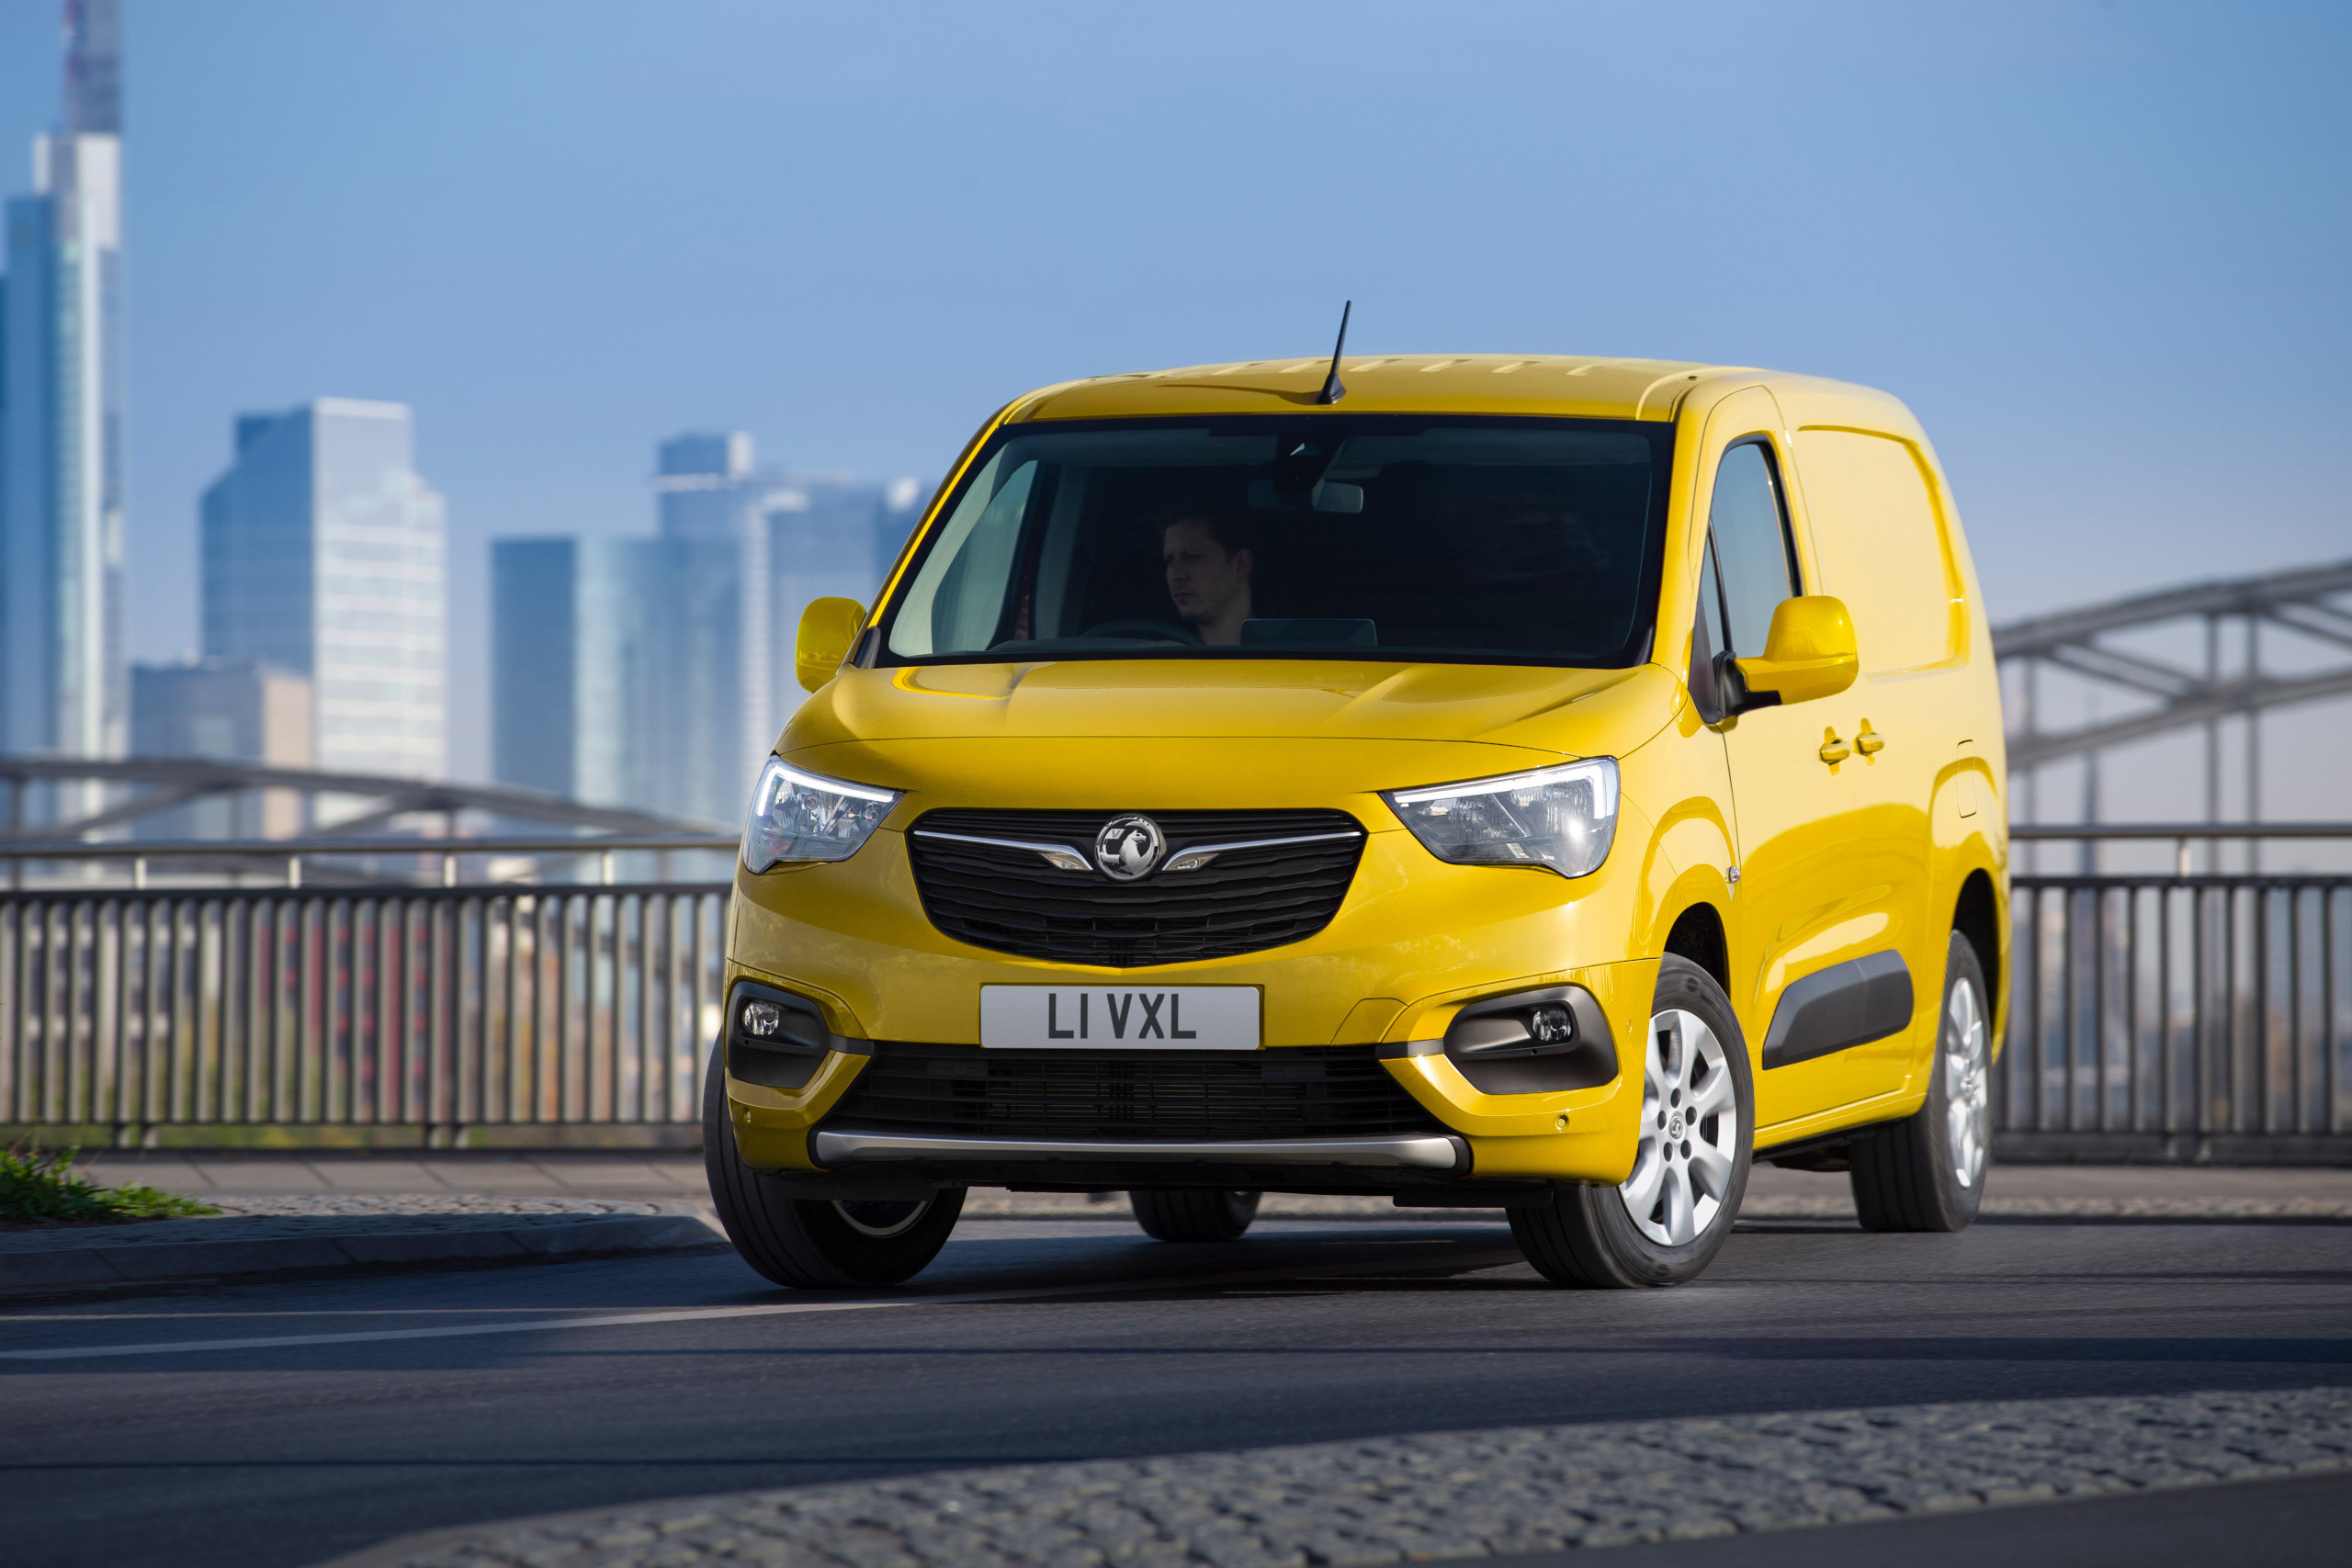 New All-Electric Vauxhall Combo-e To Go On Sale in Late 2021